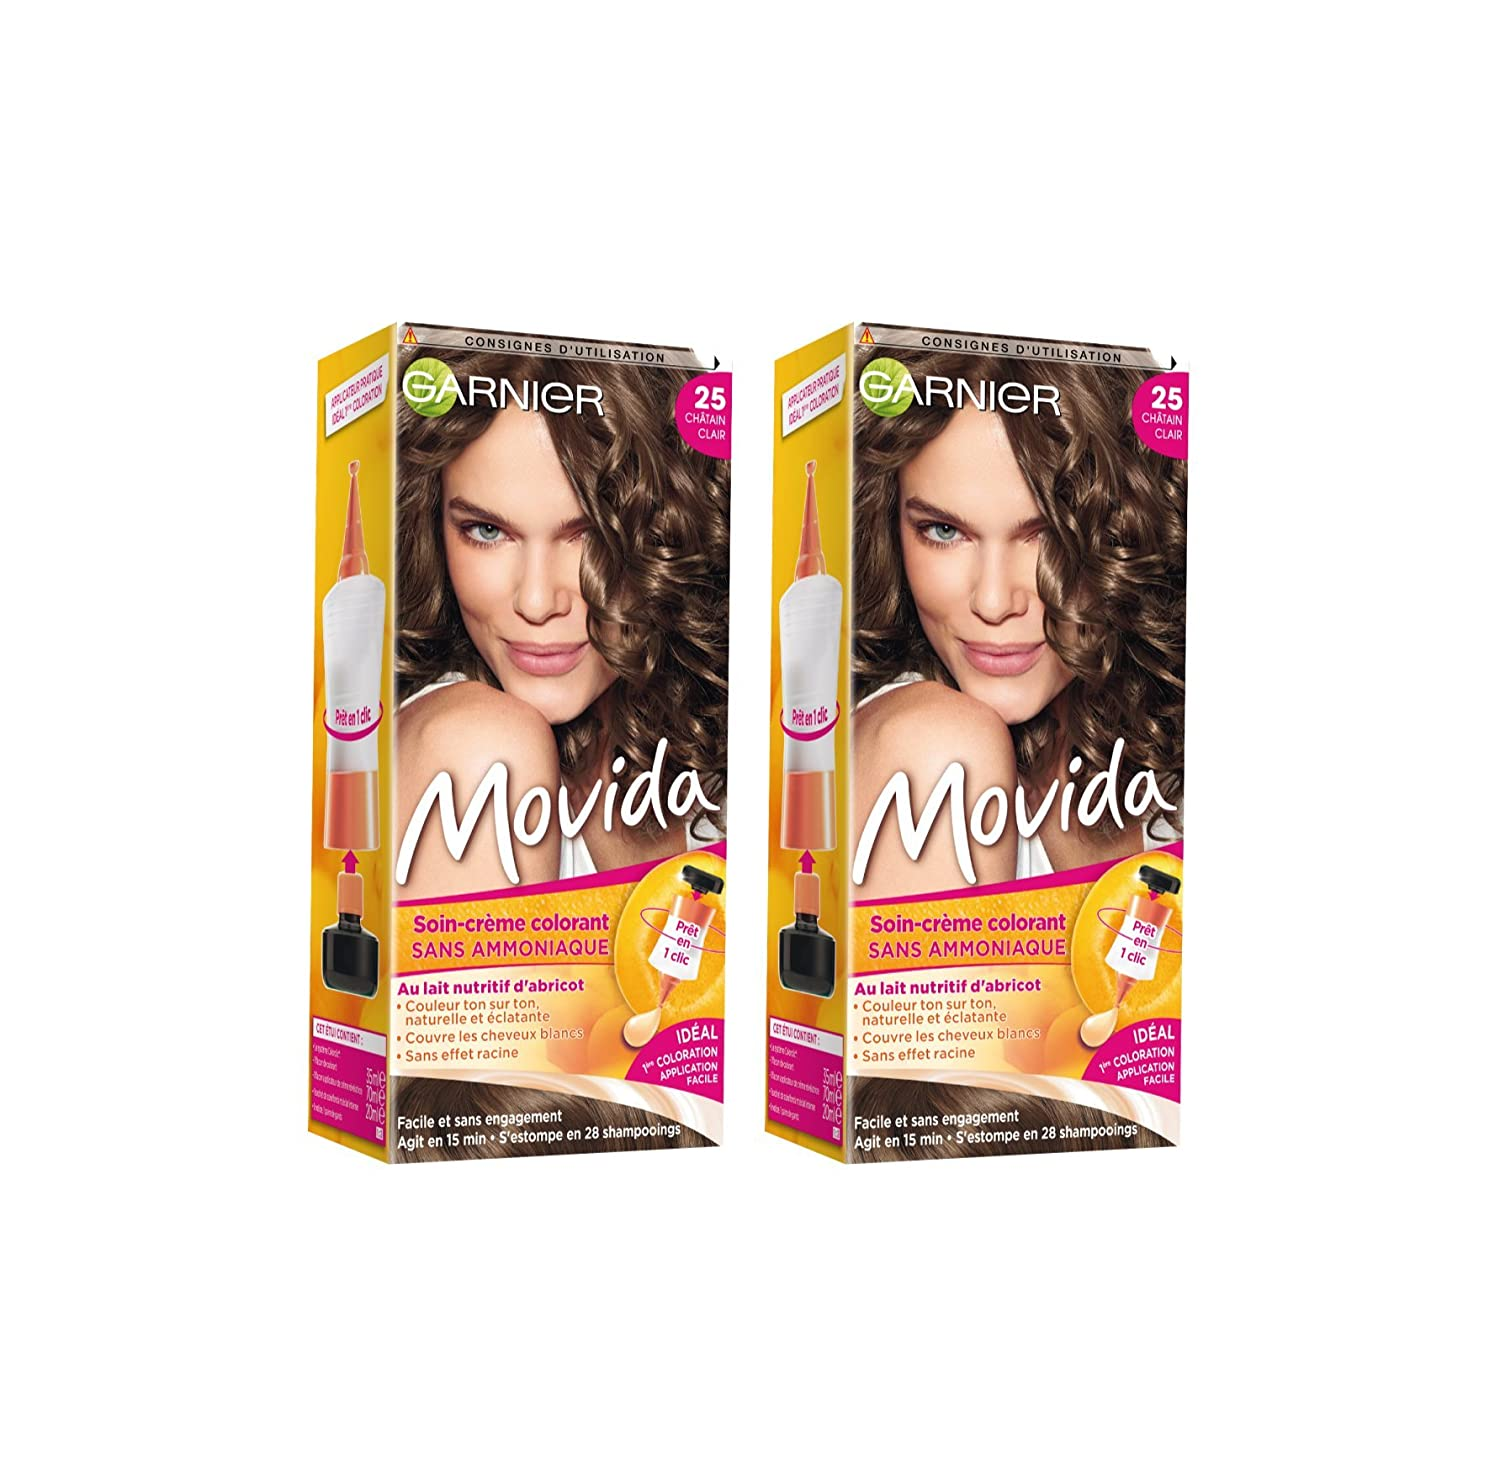 garnier movida coloration temporaire sans ammoniaque chtain 25 chtain clair - Coloration Temporaire